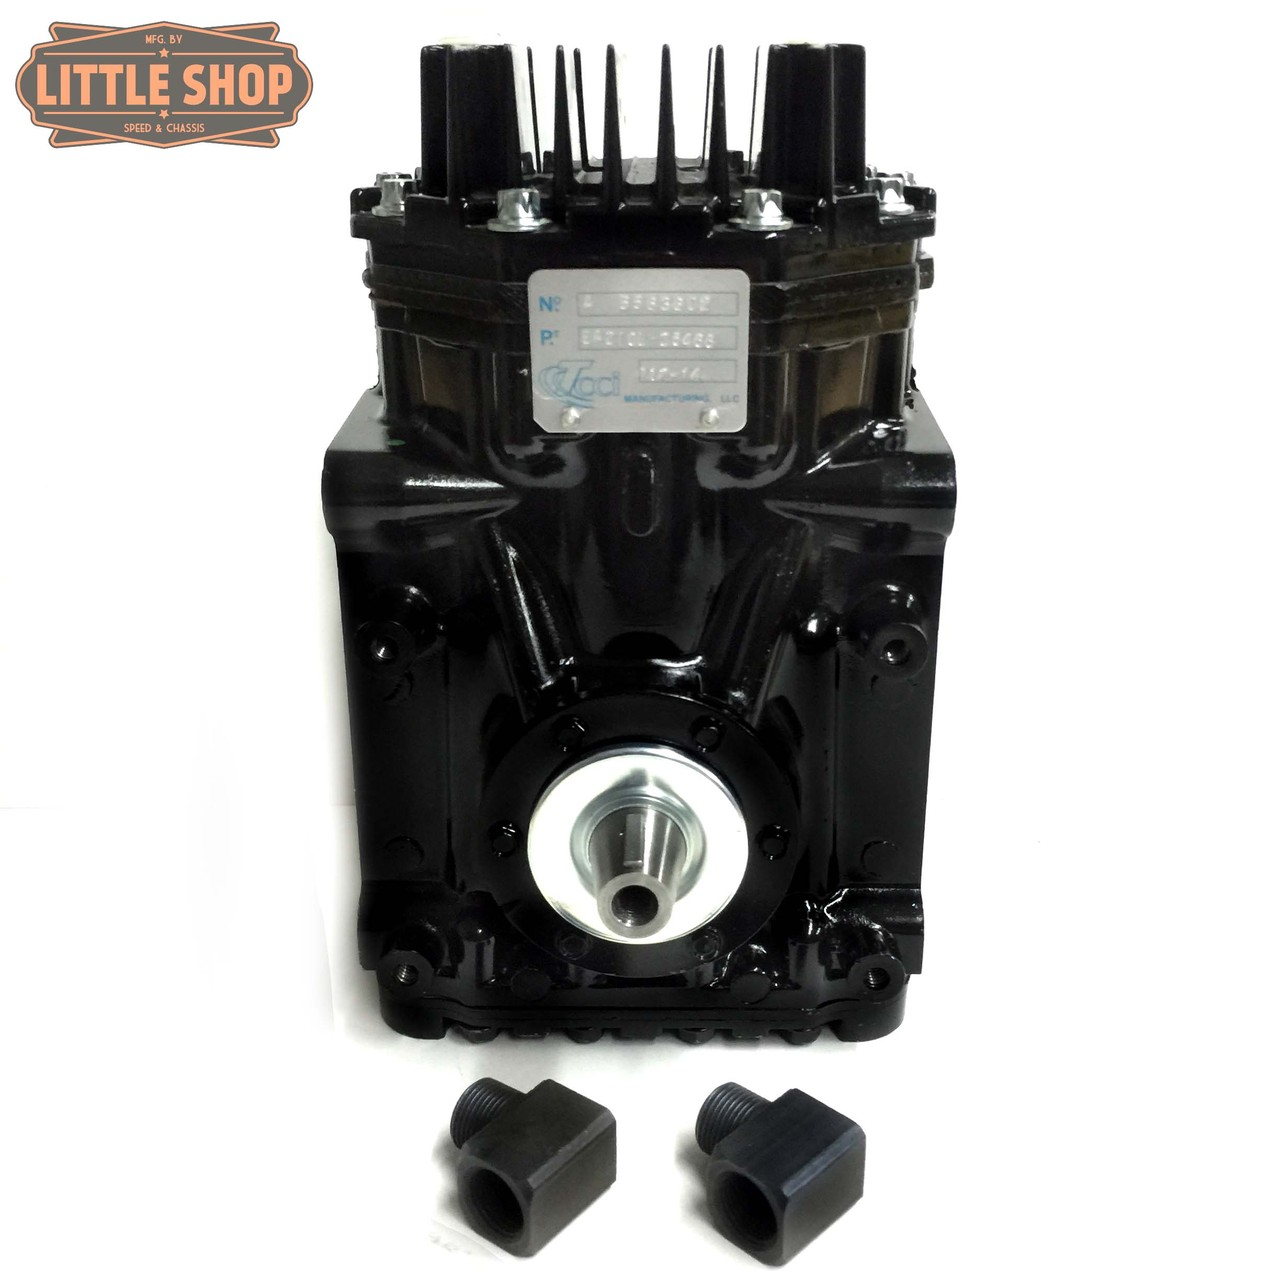 LSMFG-Diesel-SLM GM Duramax Engine Driven Compressor Kit (same kit as EDC kit but with upgraded SLM compressor) ** PLEASE INDICATE WHICH DIESEL YOU HAVE IN SHIPPING NOTES **